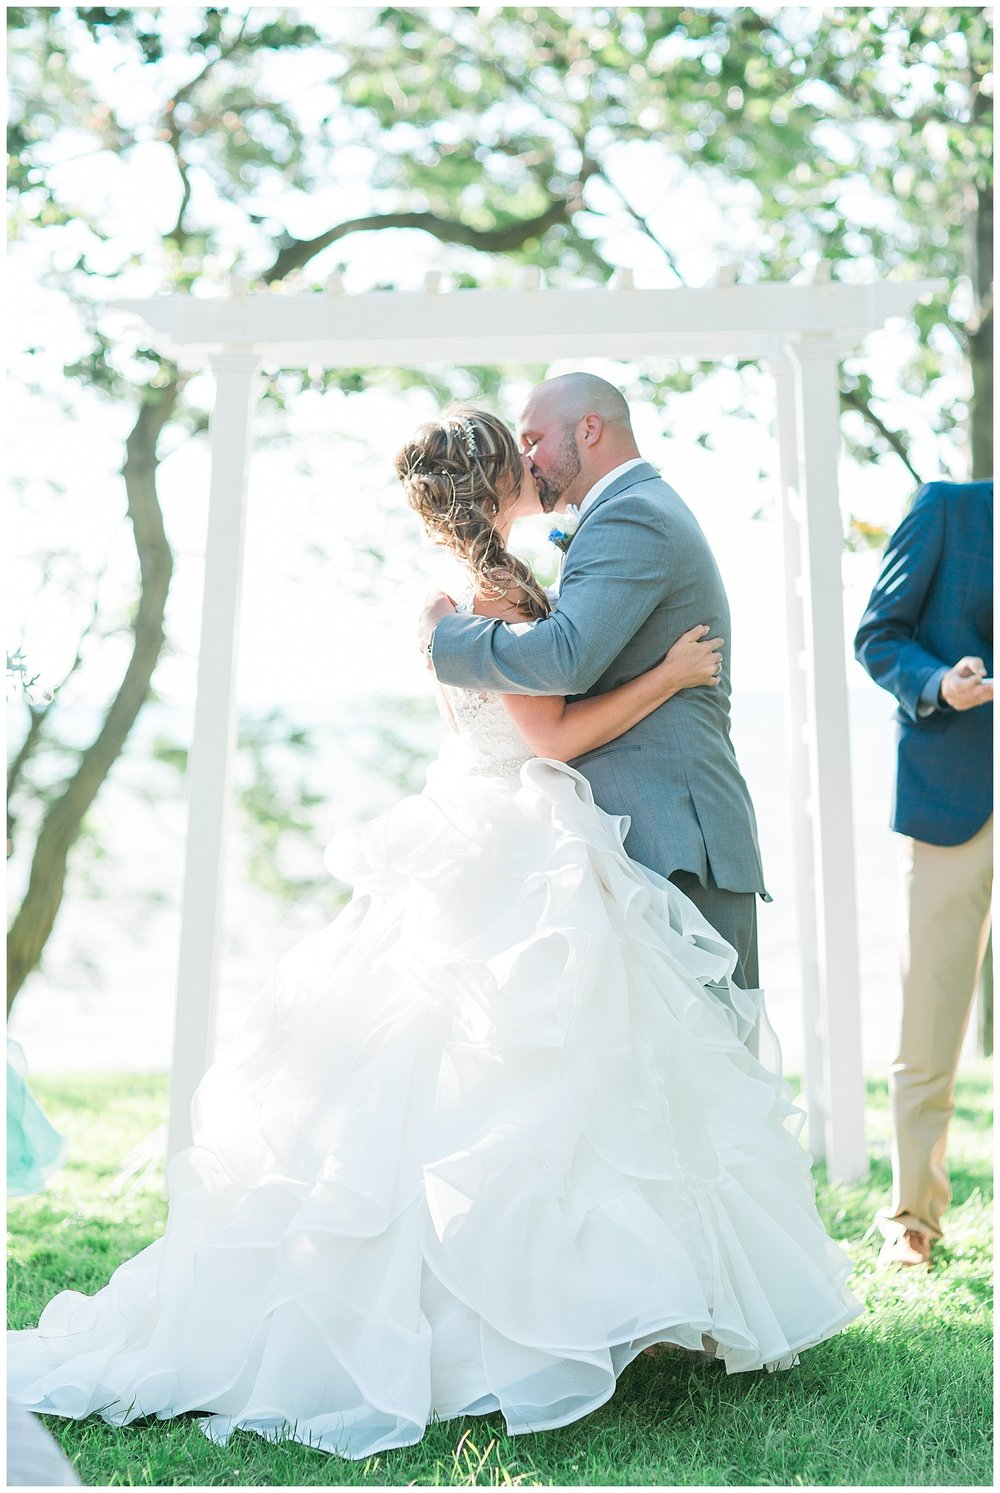 Sean and Andrea - Webster wedding - lass and beau-740_Buffalo wedding photography.jpg